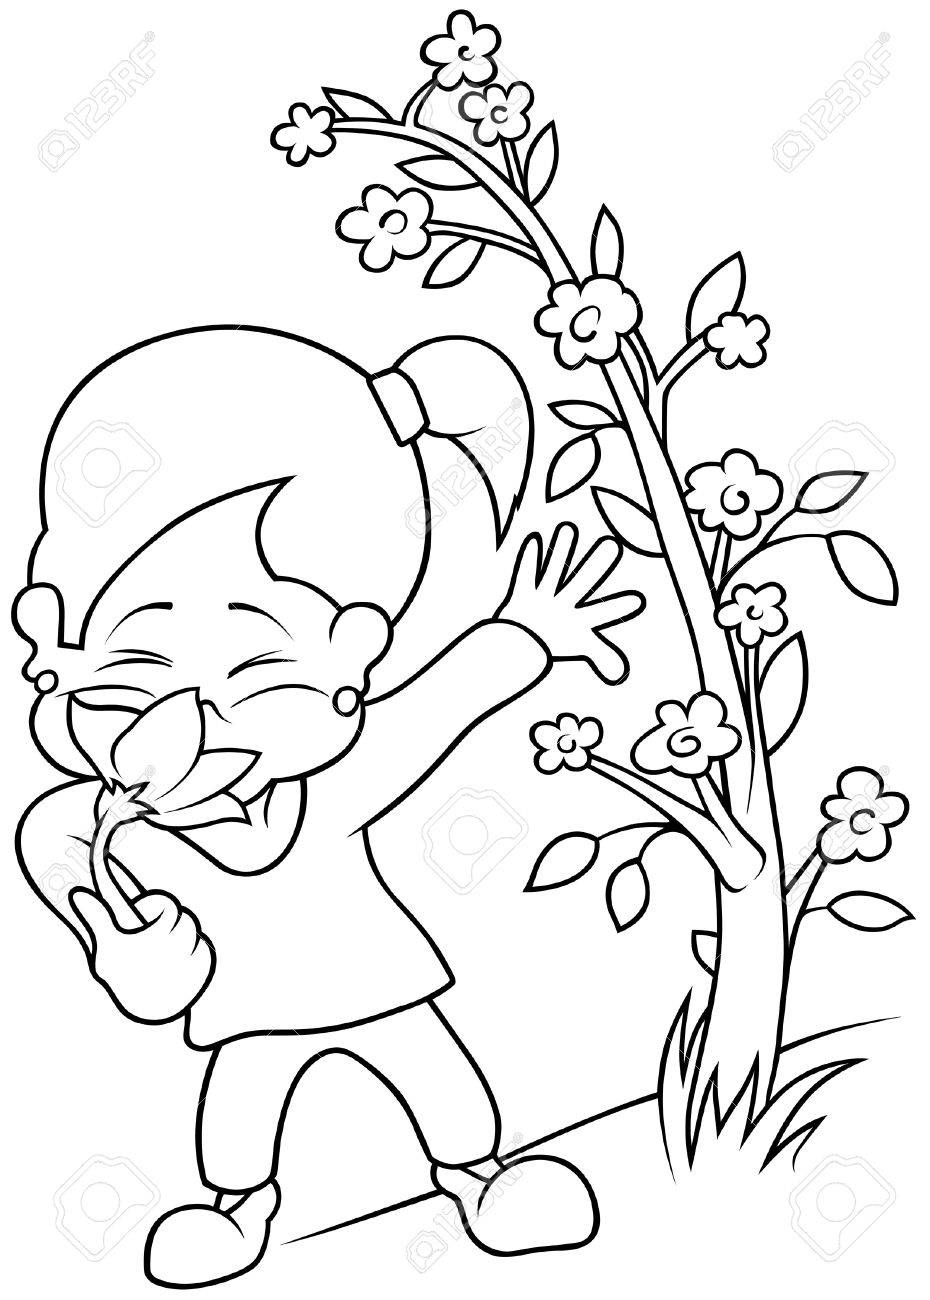 with flower black and white cartoon illustration vector